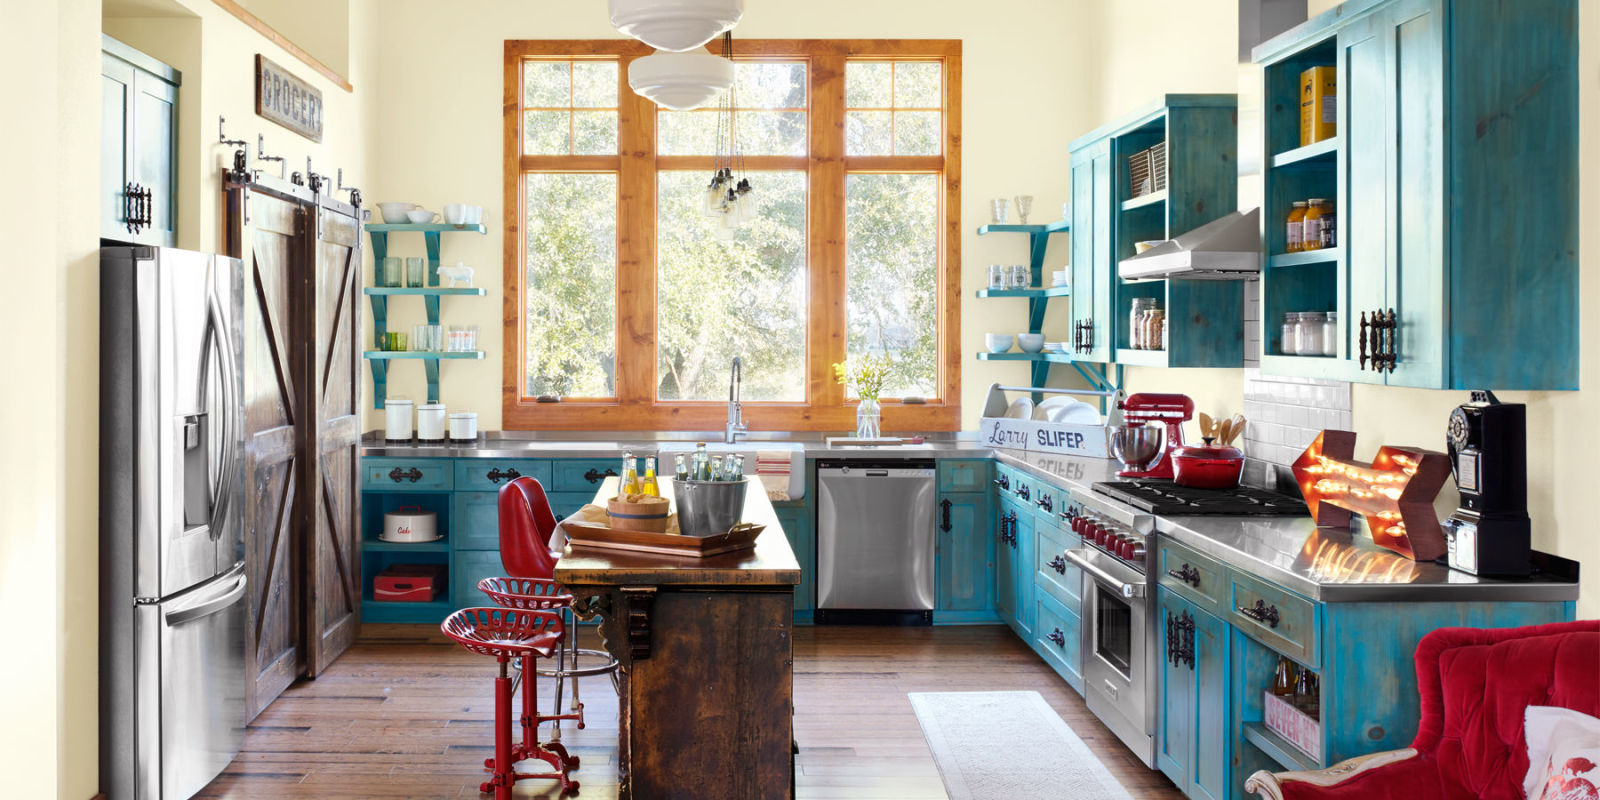 10 ways to add colorful vintage style to your kitchen junk gypsies decorating ideas - Home Design And Decor Ideas